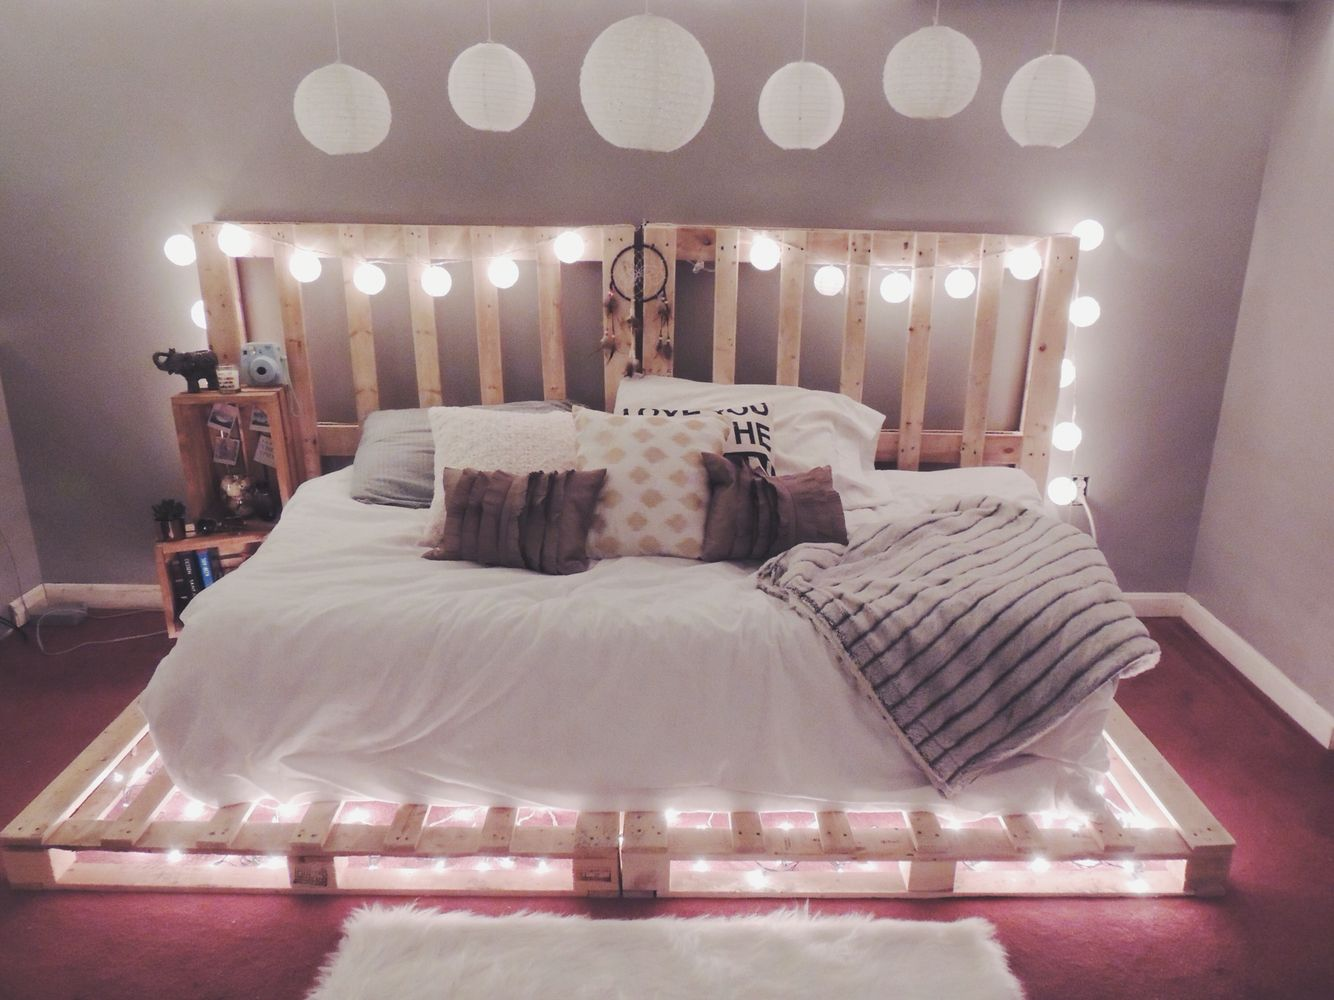 Use some old pallets and add Christmas lights to make your own bed ...